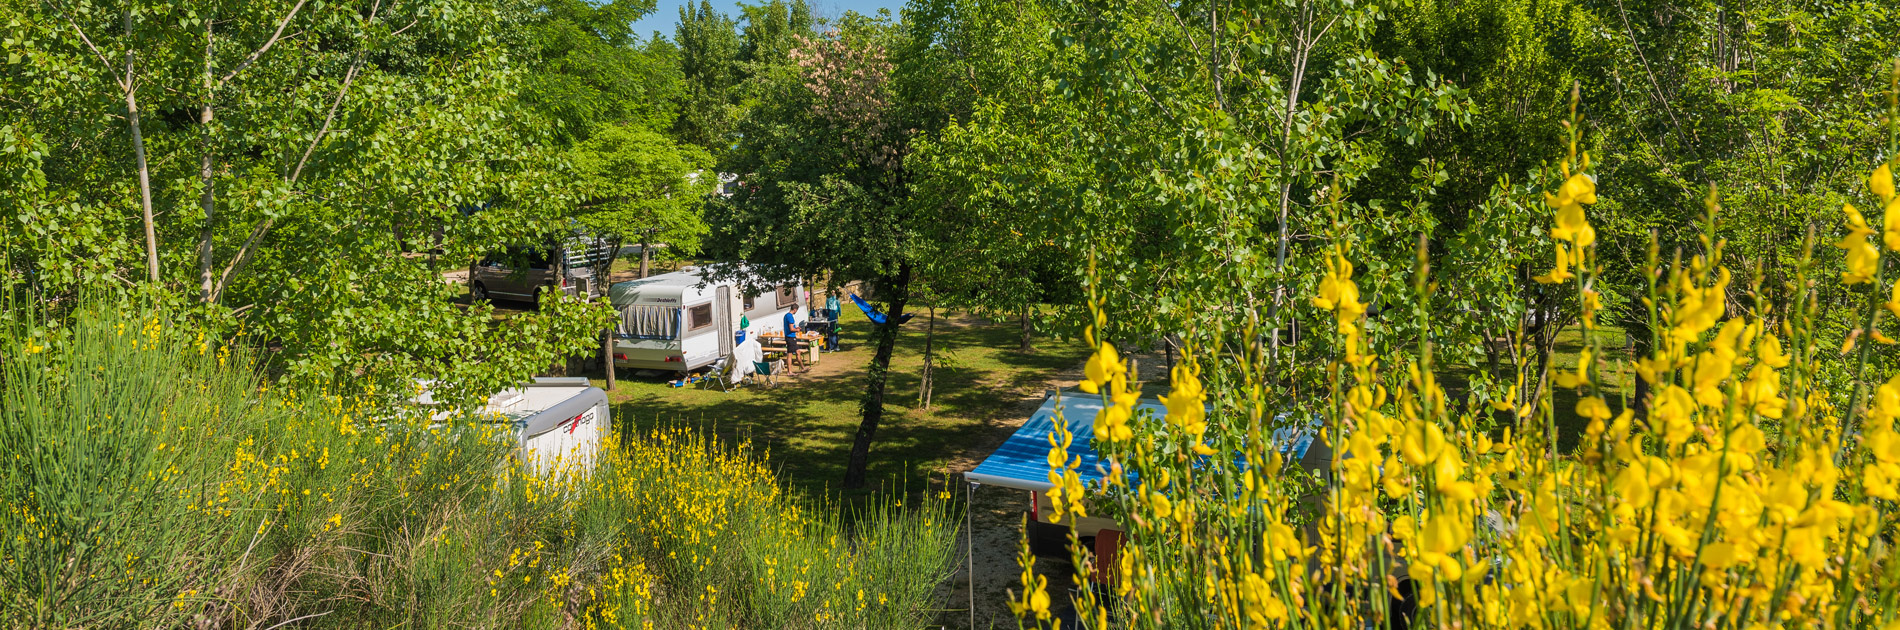 Camping Il Poggetto - Pitch Small